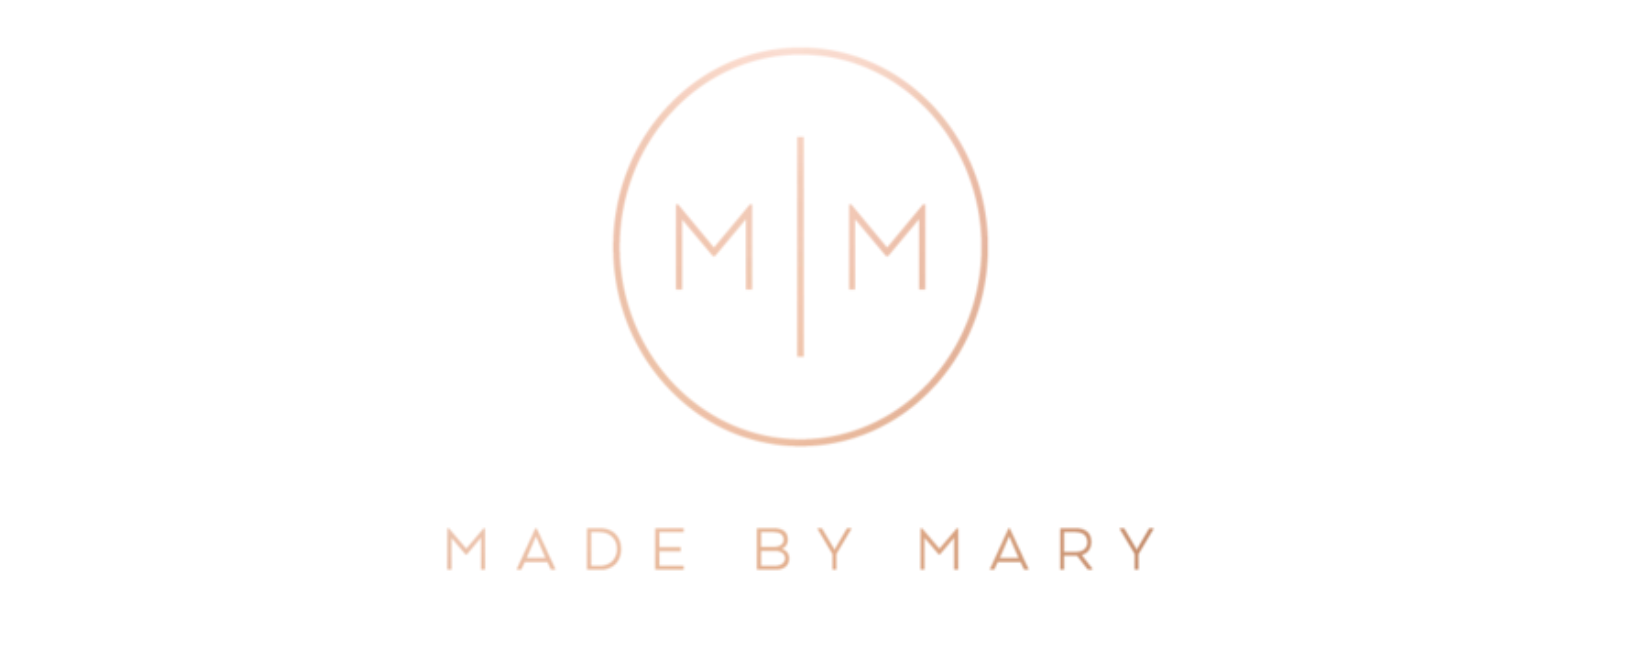 Made By Mary Discount Code 2021